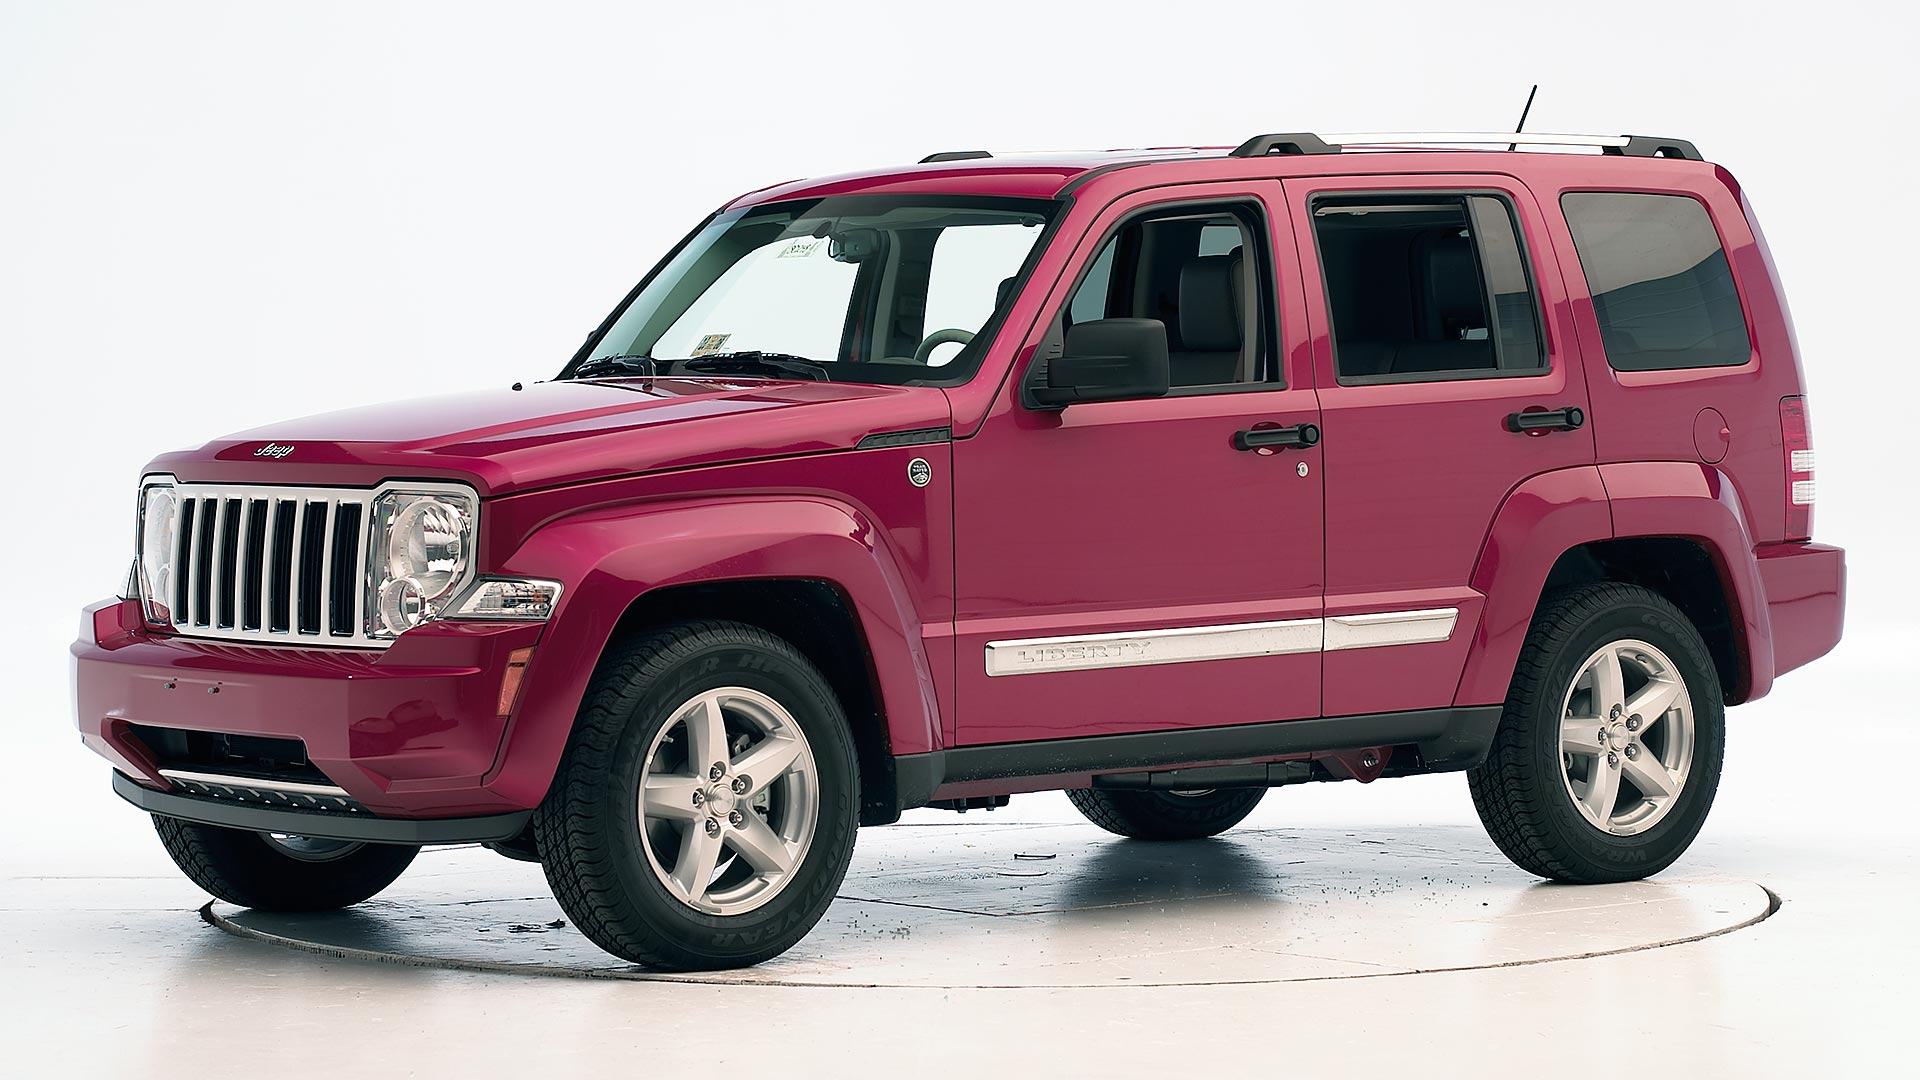 2012 Jeep Liberty 4-door SUV